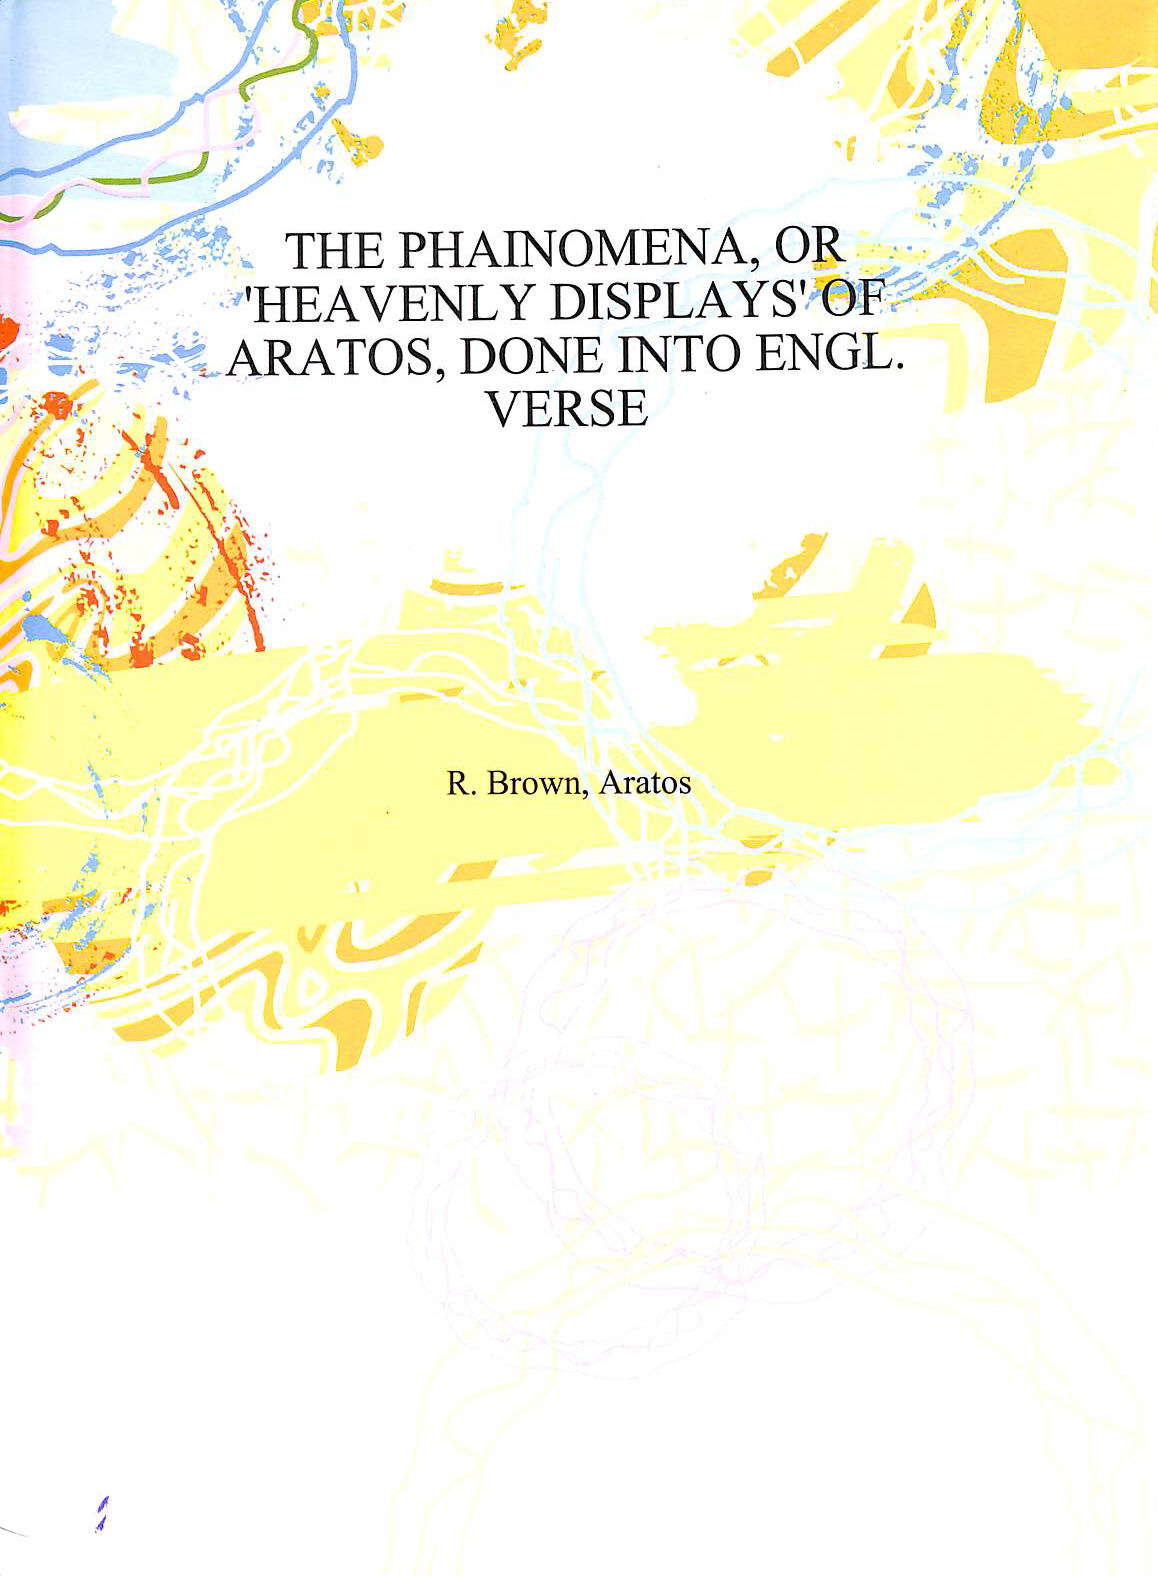 Image for The Phainomena, or 'Heavenly displays' of Aratus, done into Engl. verse by R. Brown 1885 [Hardcover]